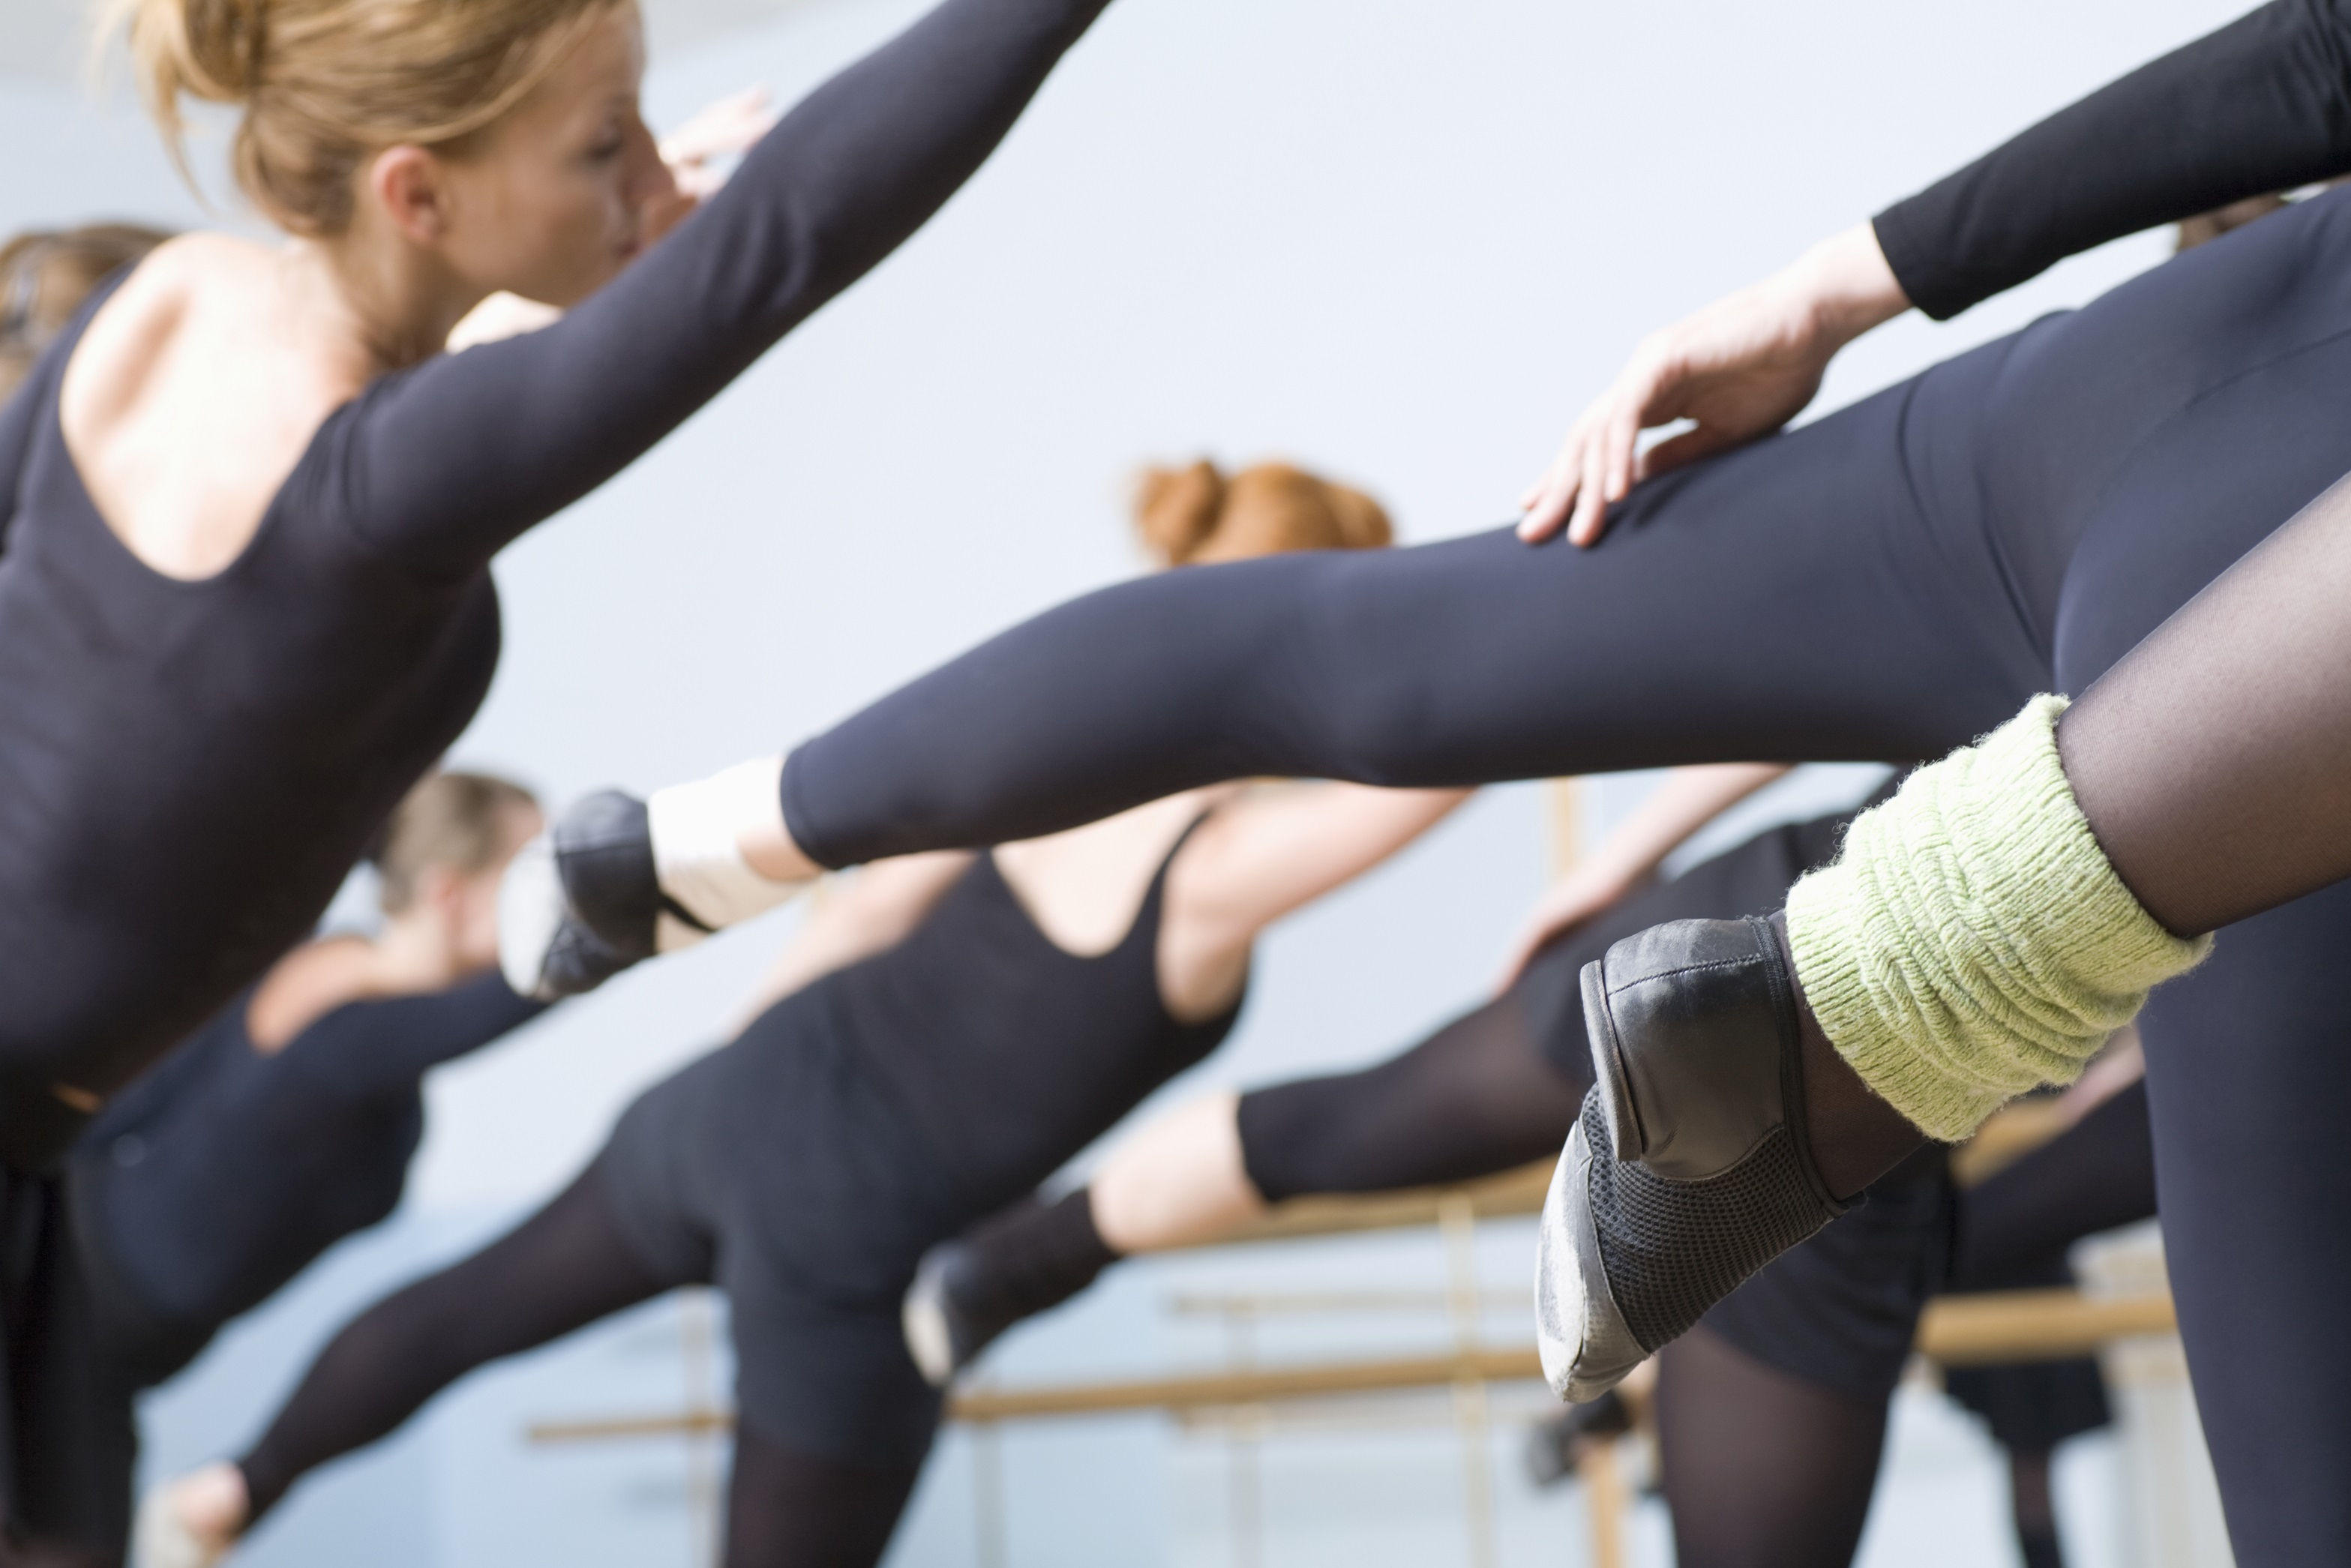 Woman and students in ballet class attire stretching in arabesque